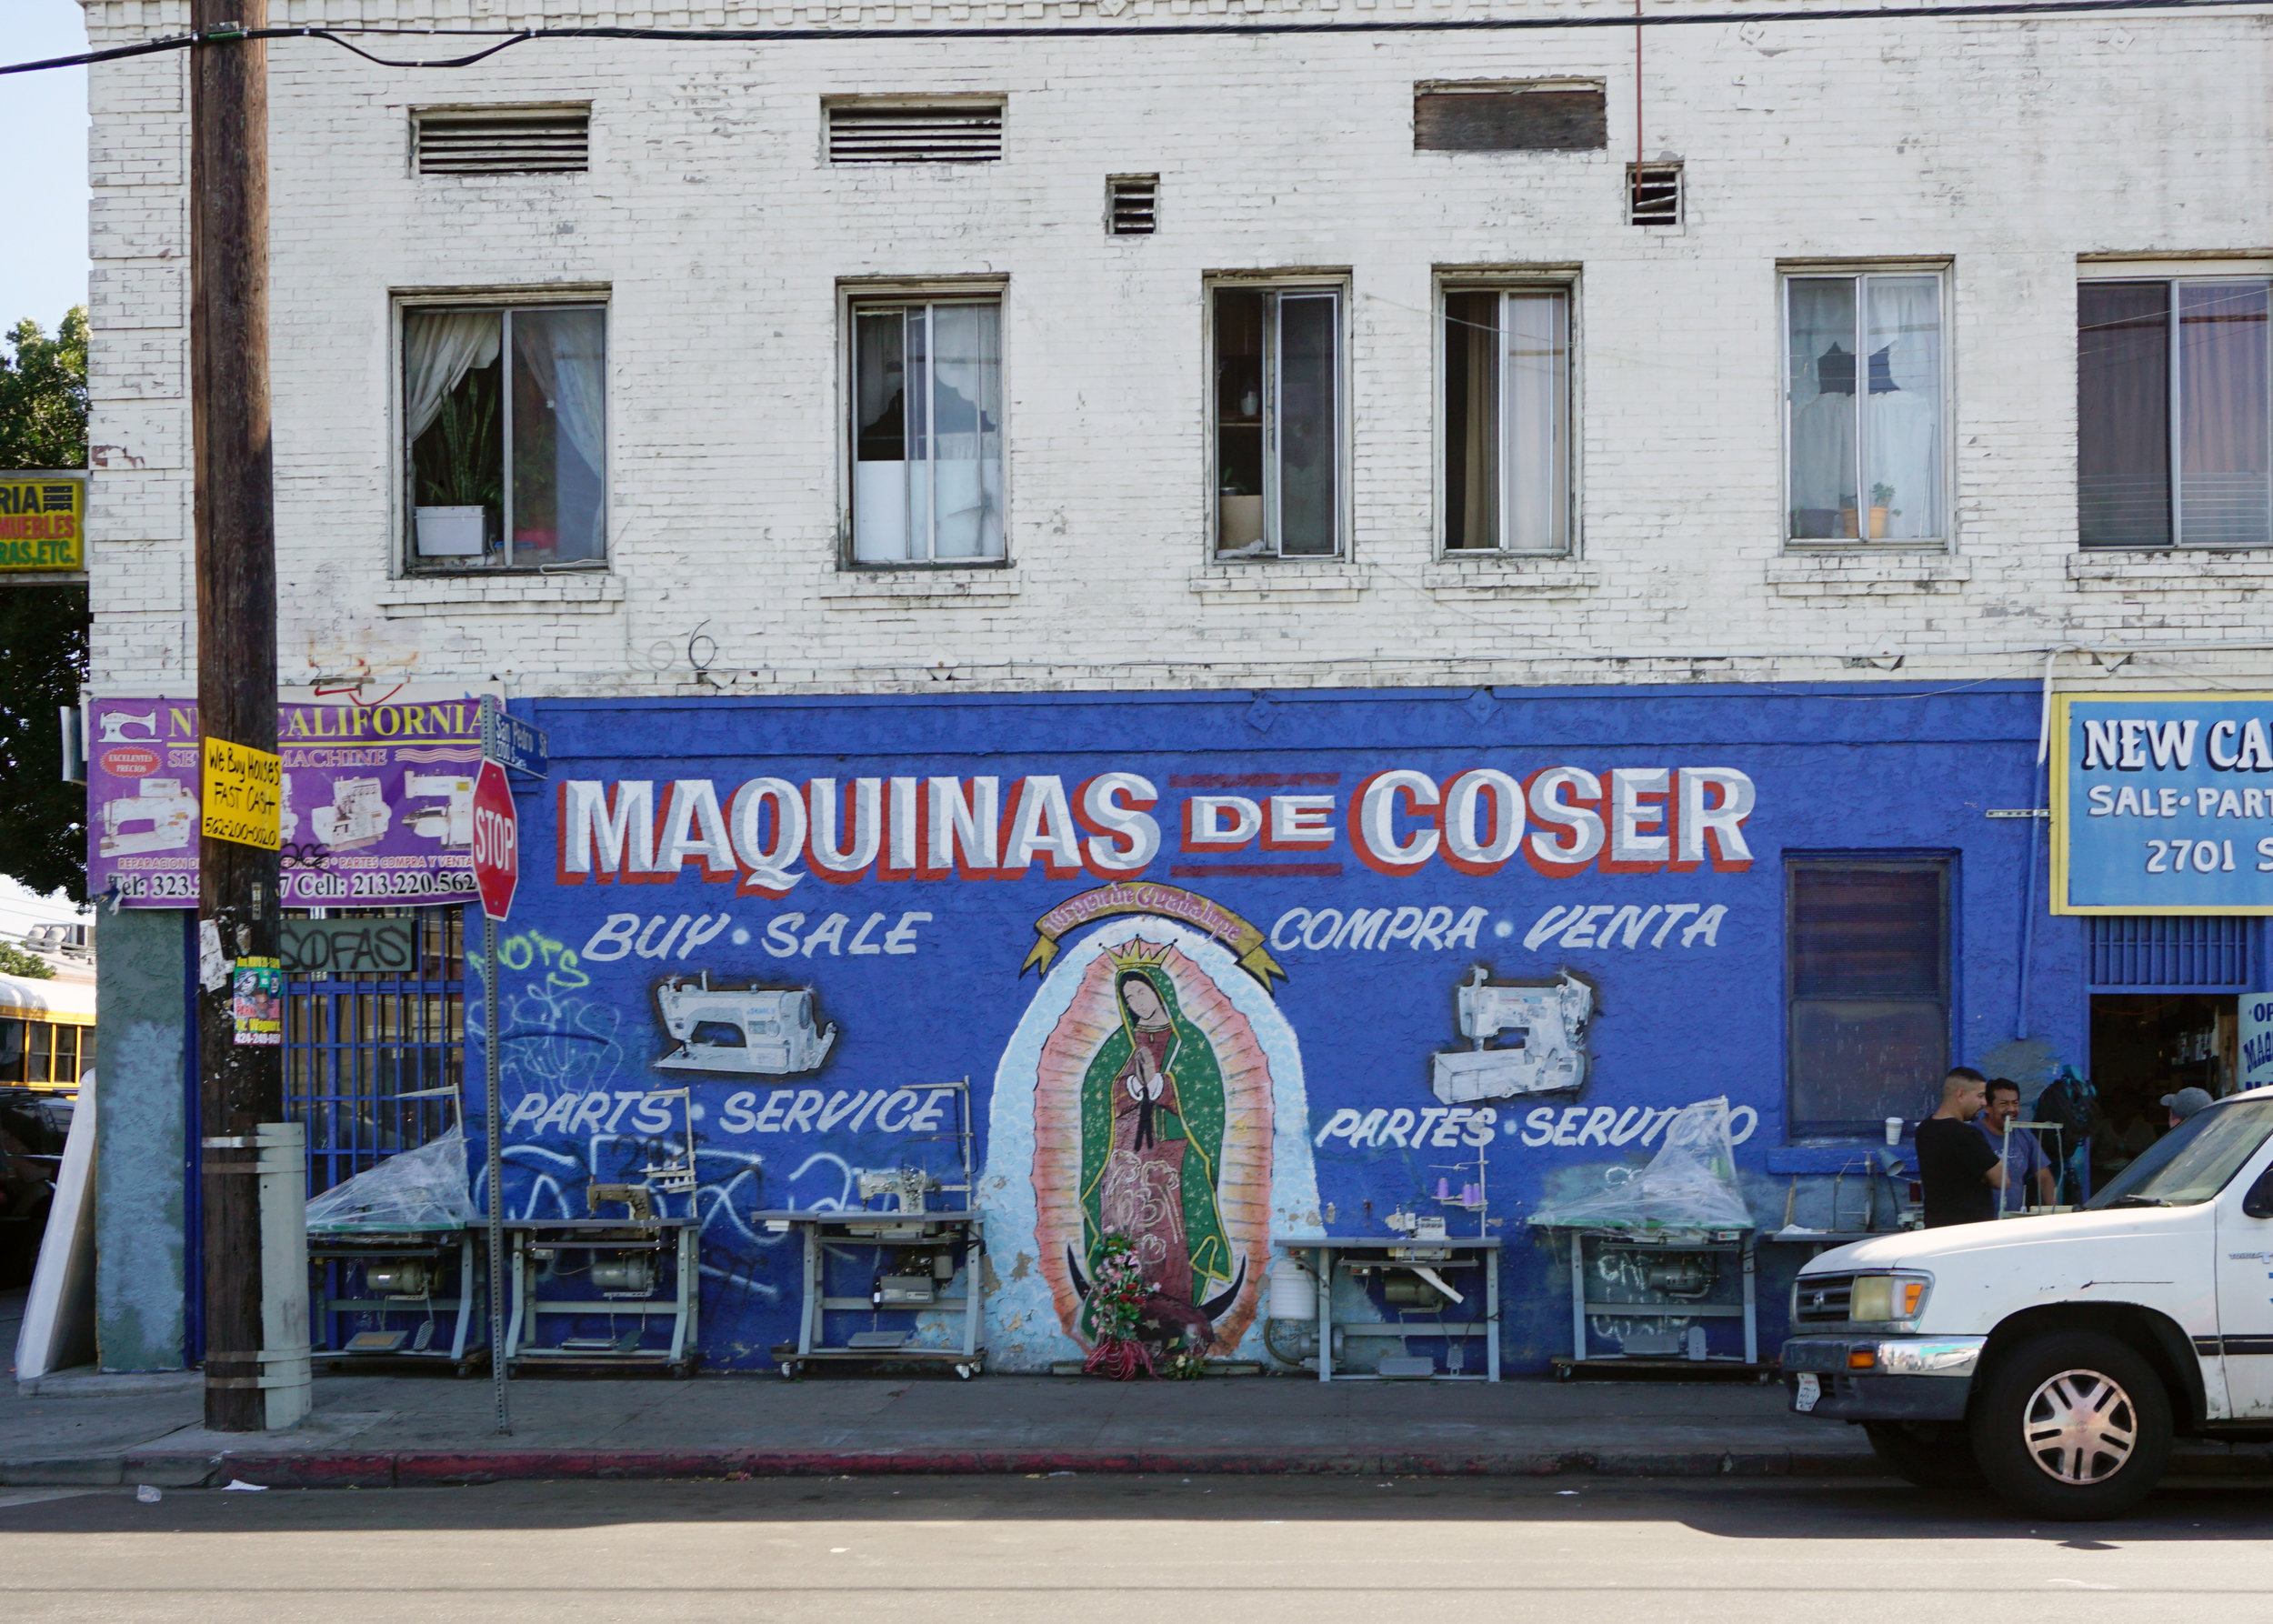 Guadalupe_MaquinaCOser_SanPedroSt_2.jpg